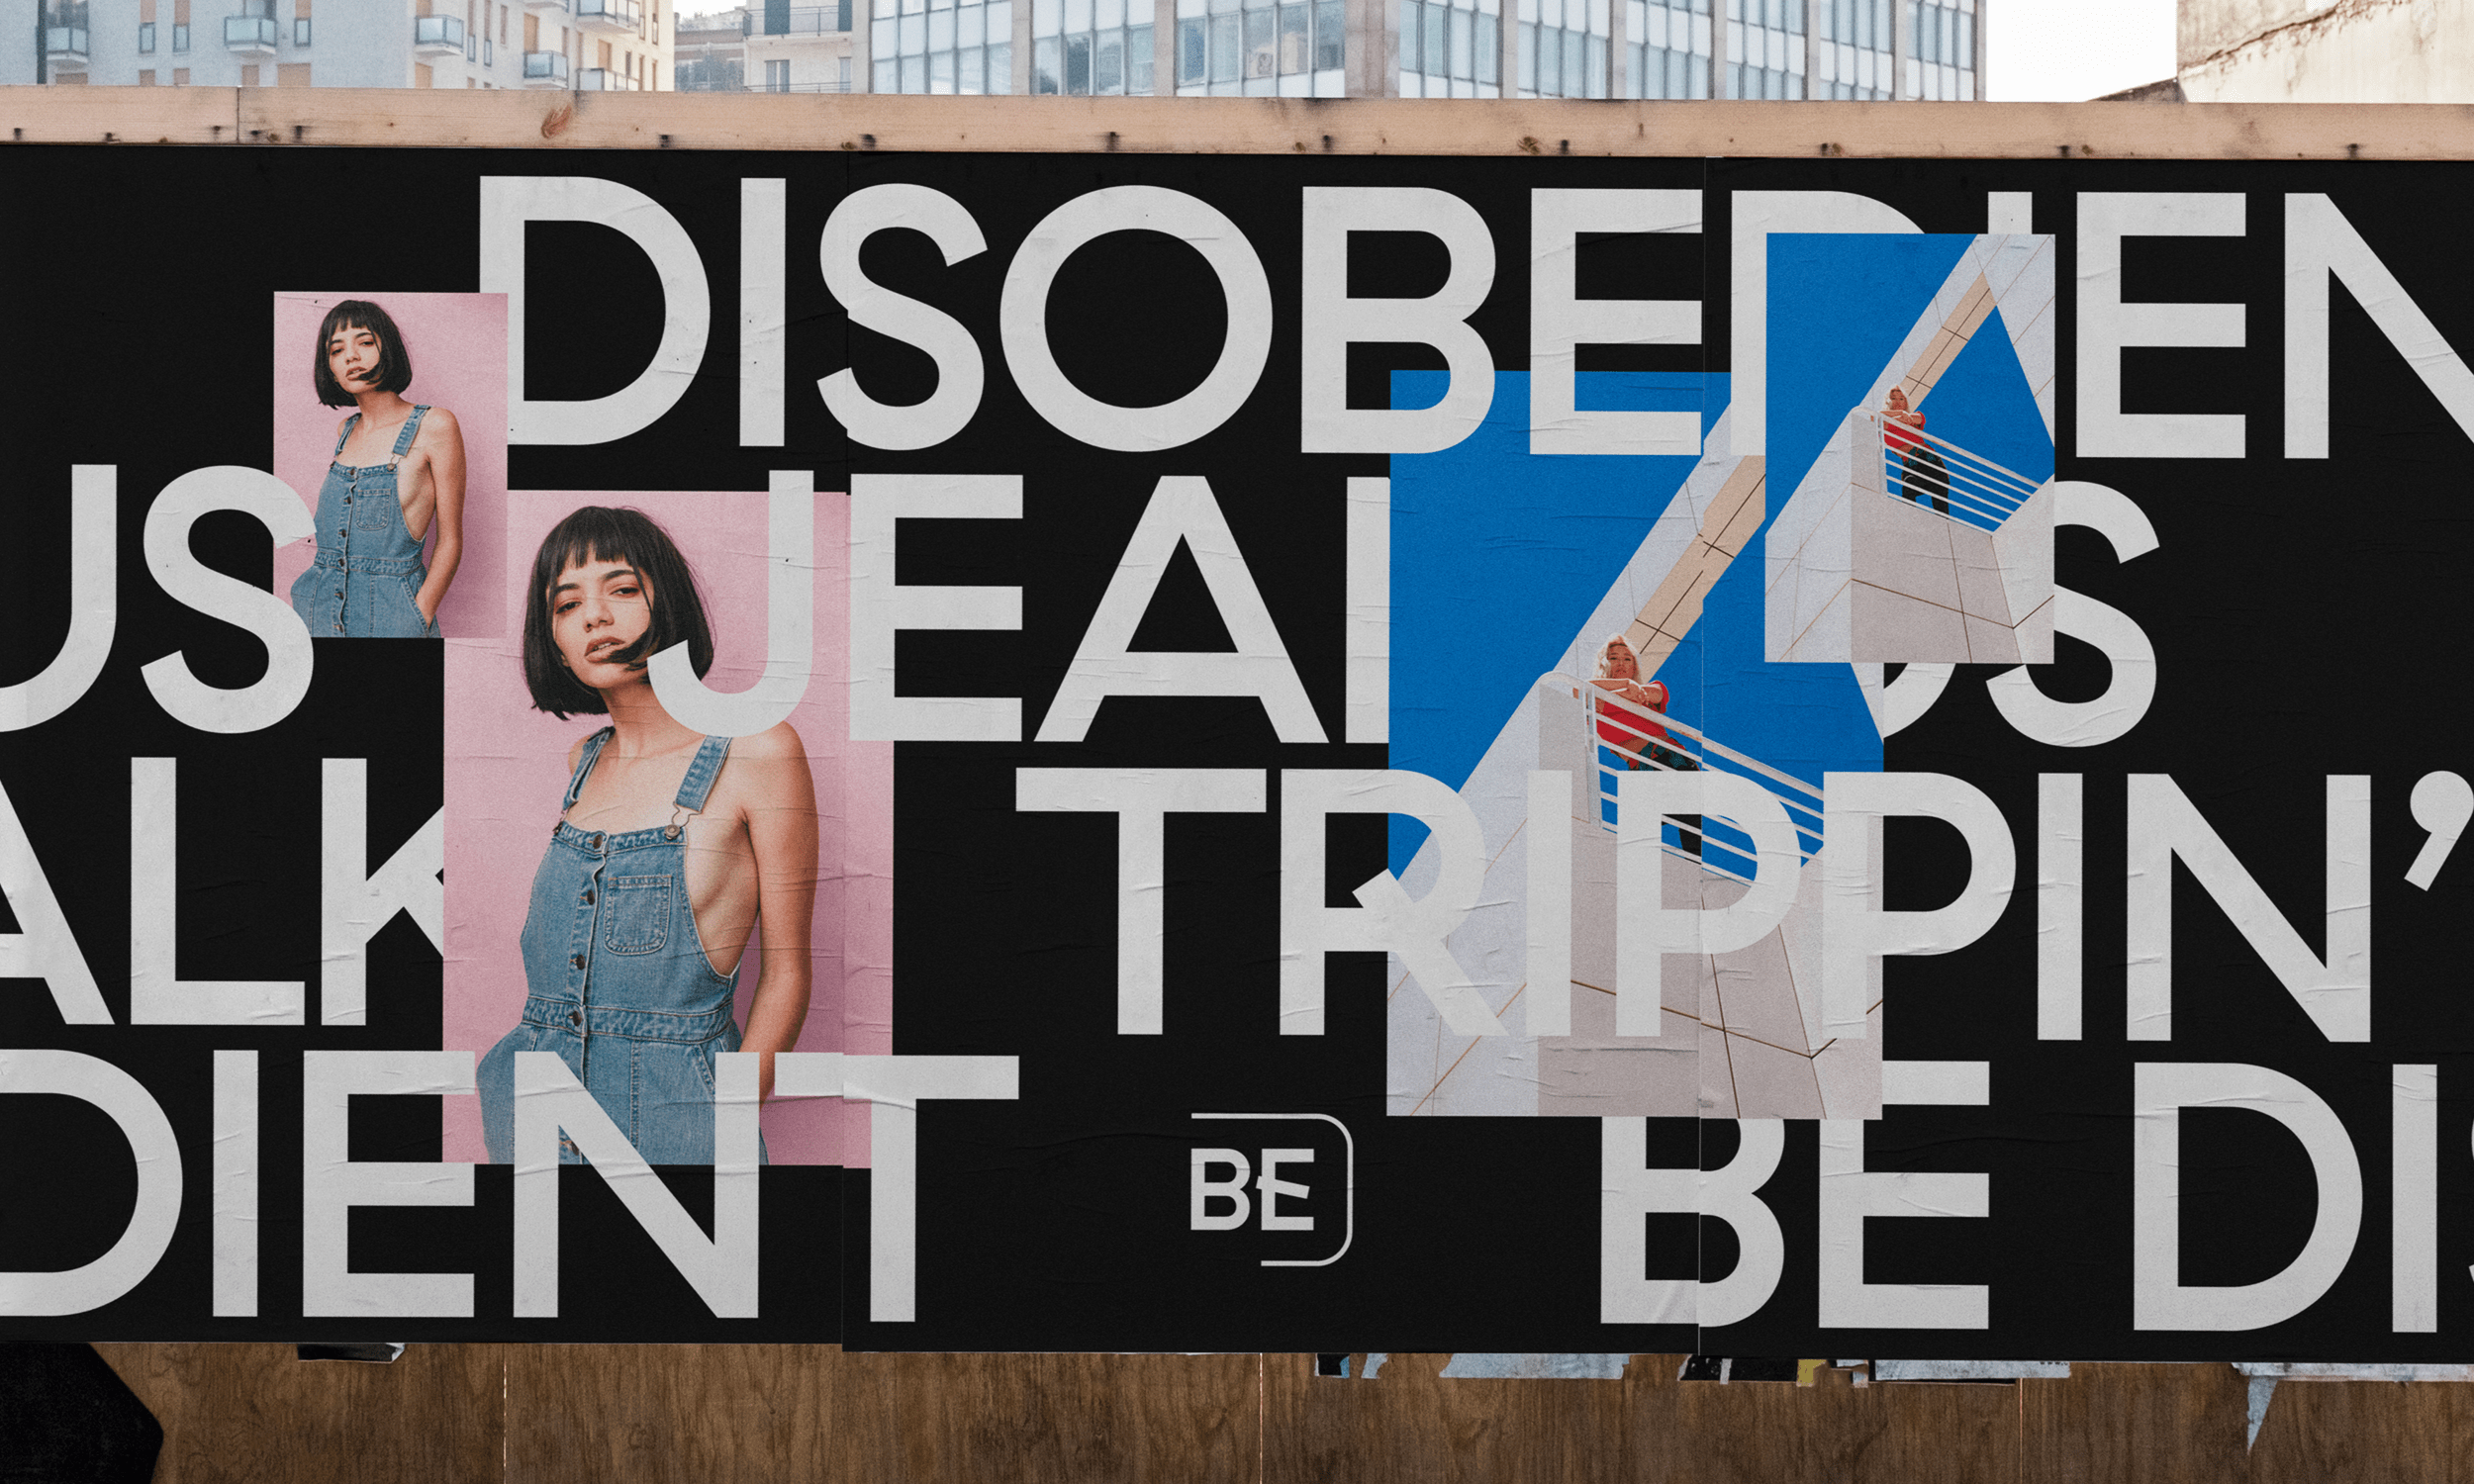 Be Disobedient poster billboard city